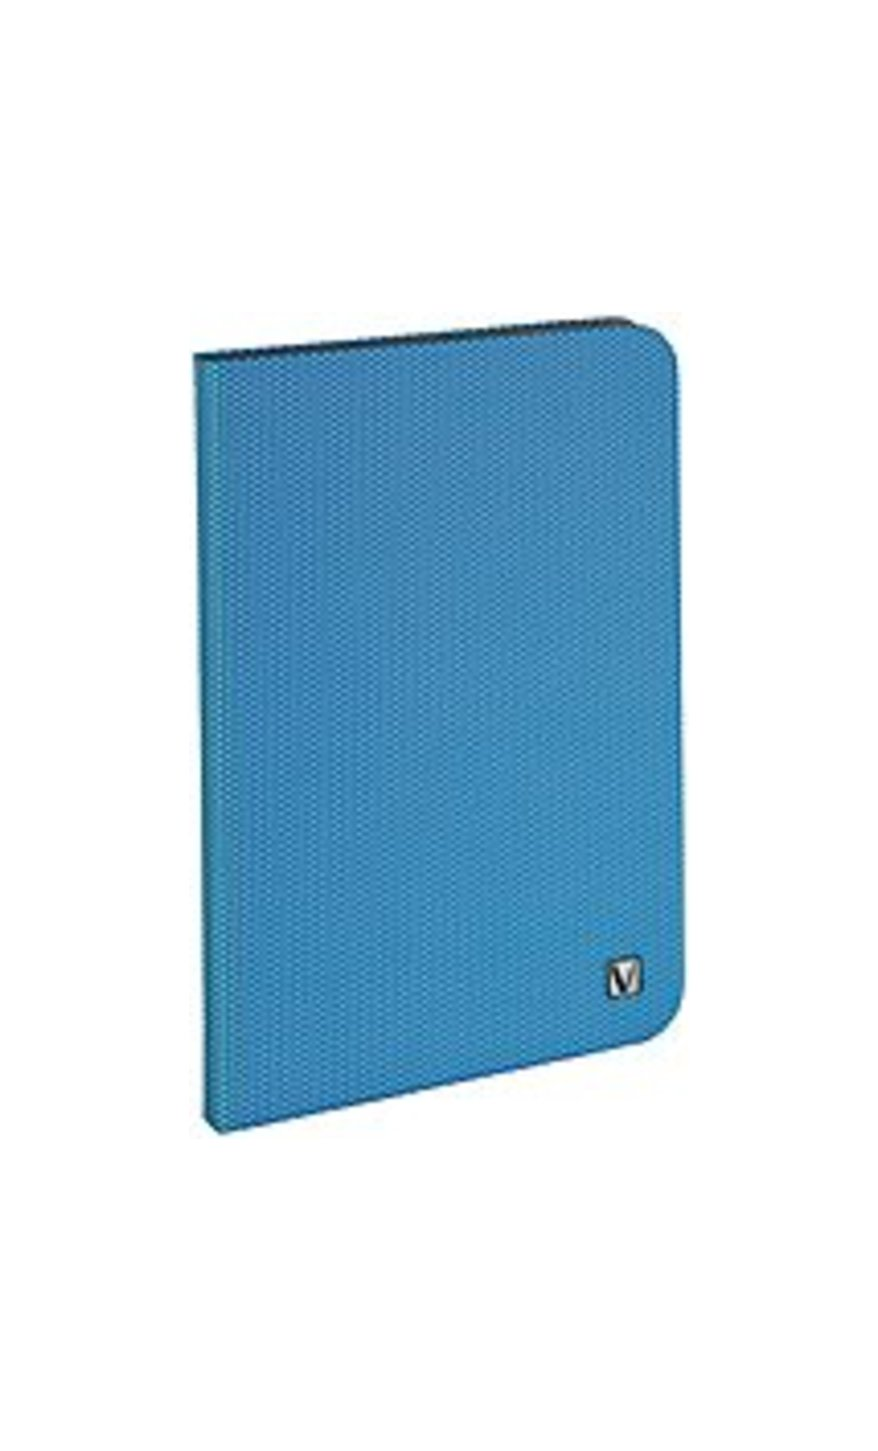 Verbatim_023942981008_98100_Folio_Hex_Case_for_iPad_Mini__Aqua_Blue